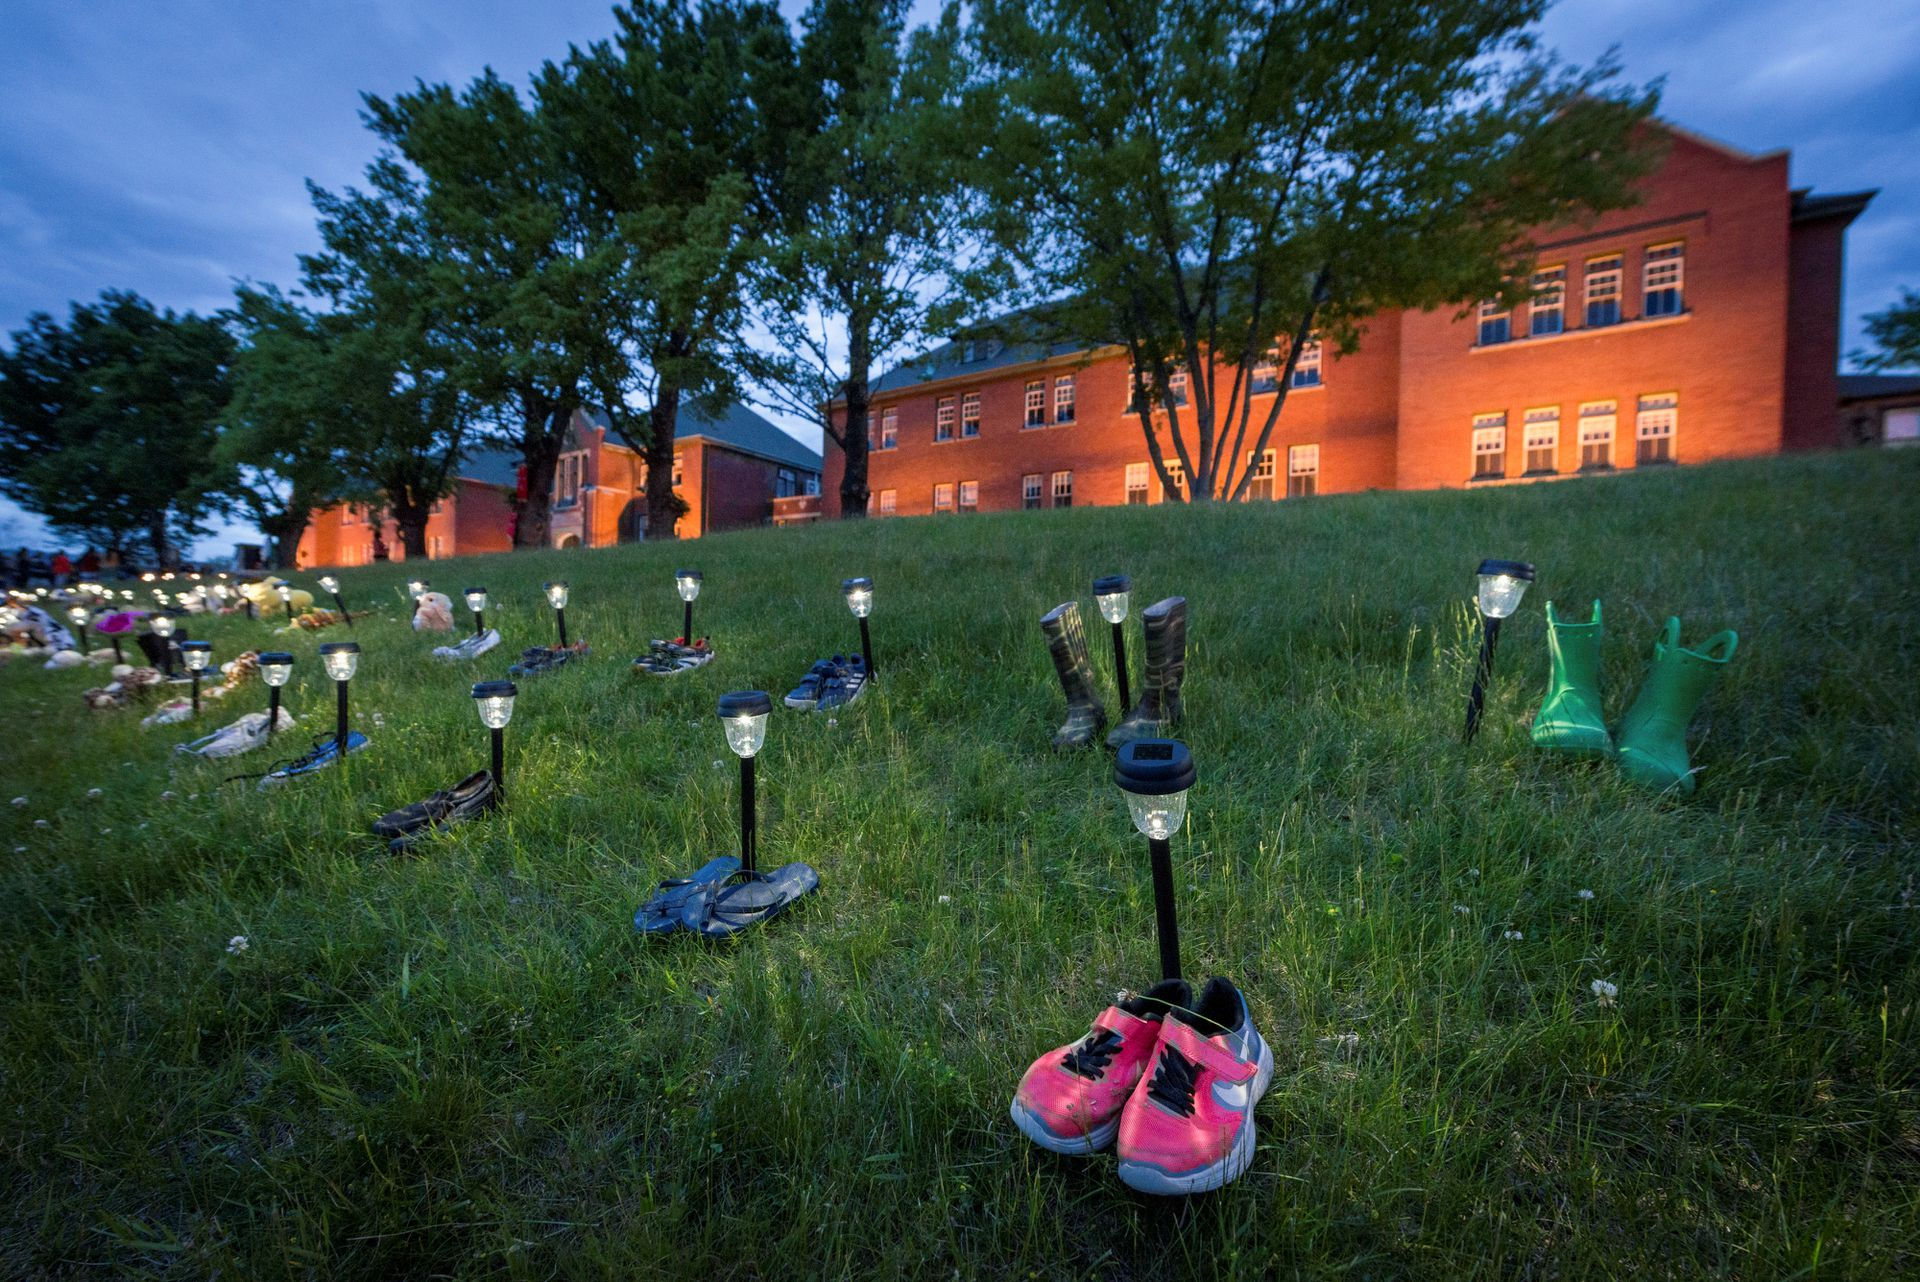 Pairs of children's shoes and toys are seen at memorial in front of the former Kamloops Indian Residential School after the remains of 215 children, some as young as three years old, were found at the site last week, in Kamloops, British Columbia, Canada May 31, 2021. Photo: Reuters